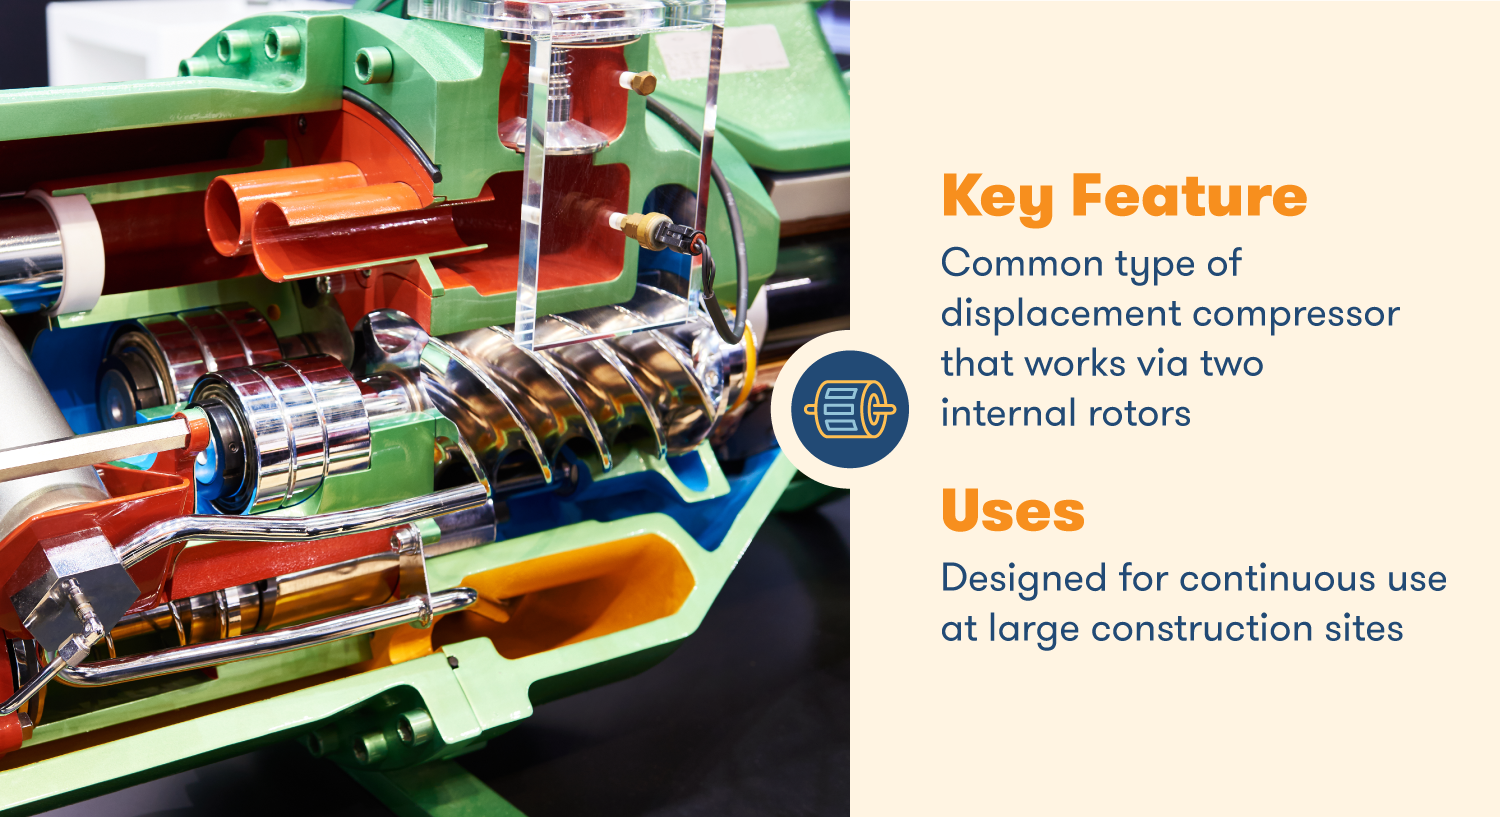 Rotary-screw compressors work via two internal rotors, designed for continuous use at larger construction sites.